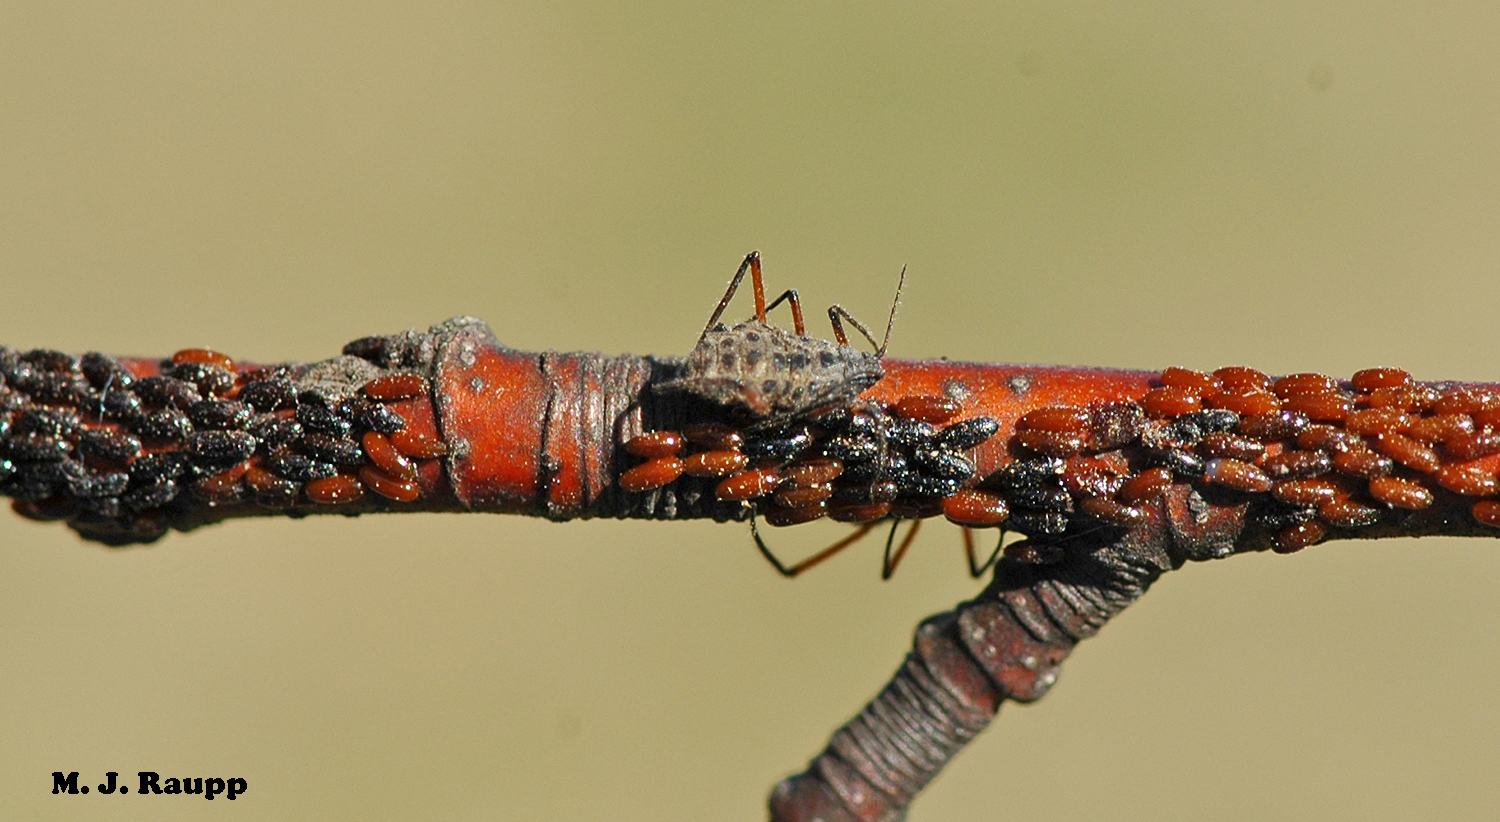 Eggs of the giant bark aphid are the overwintering stage. They line small branches by the thousands and change from amber to black as they age.